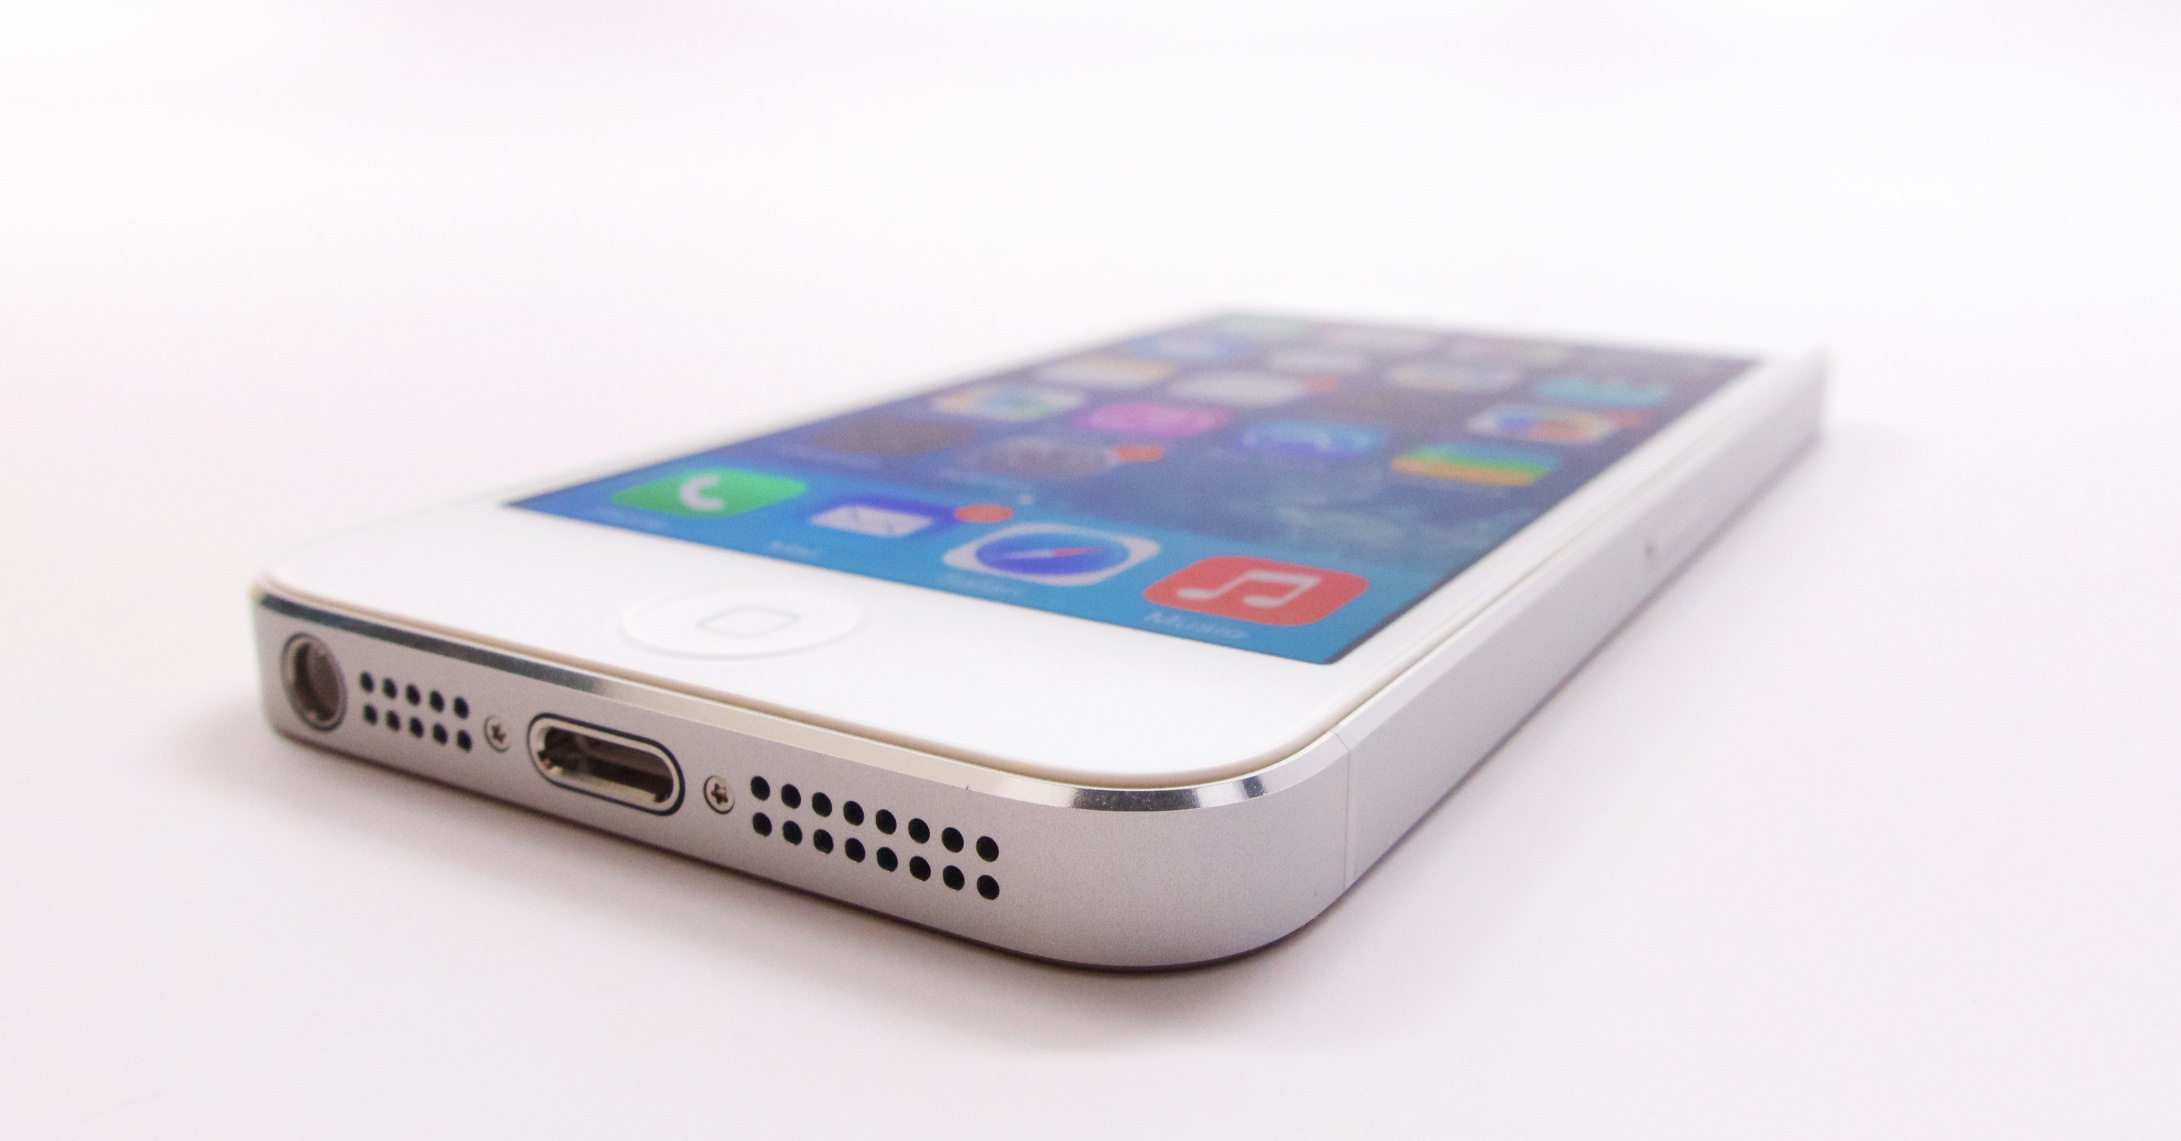 Gazelle-Certified-Reviews-iPhone-5-3